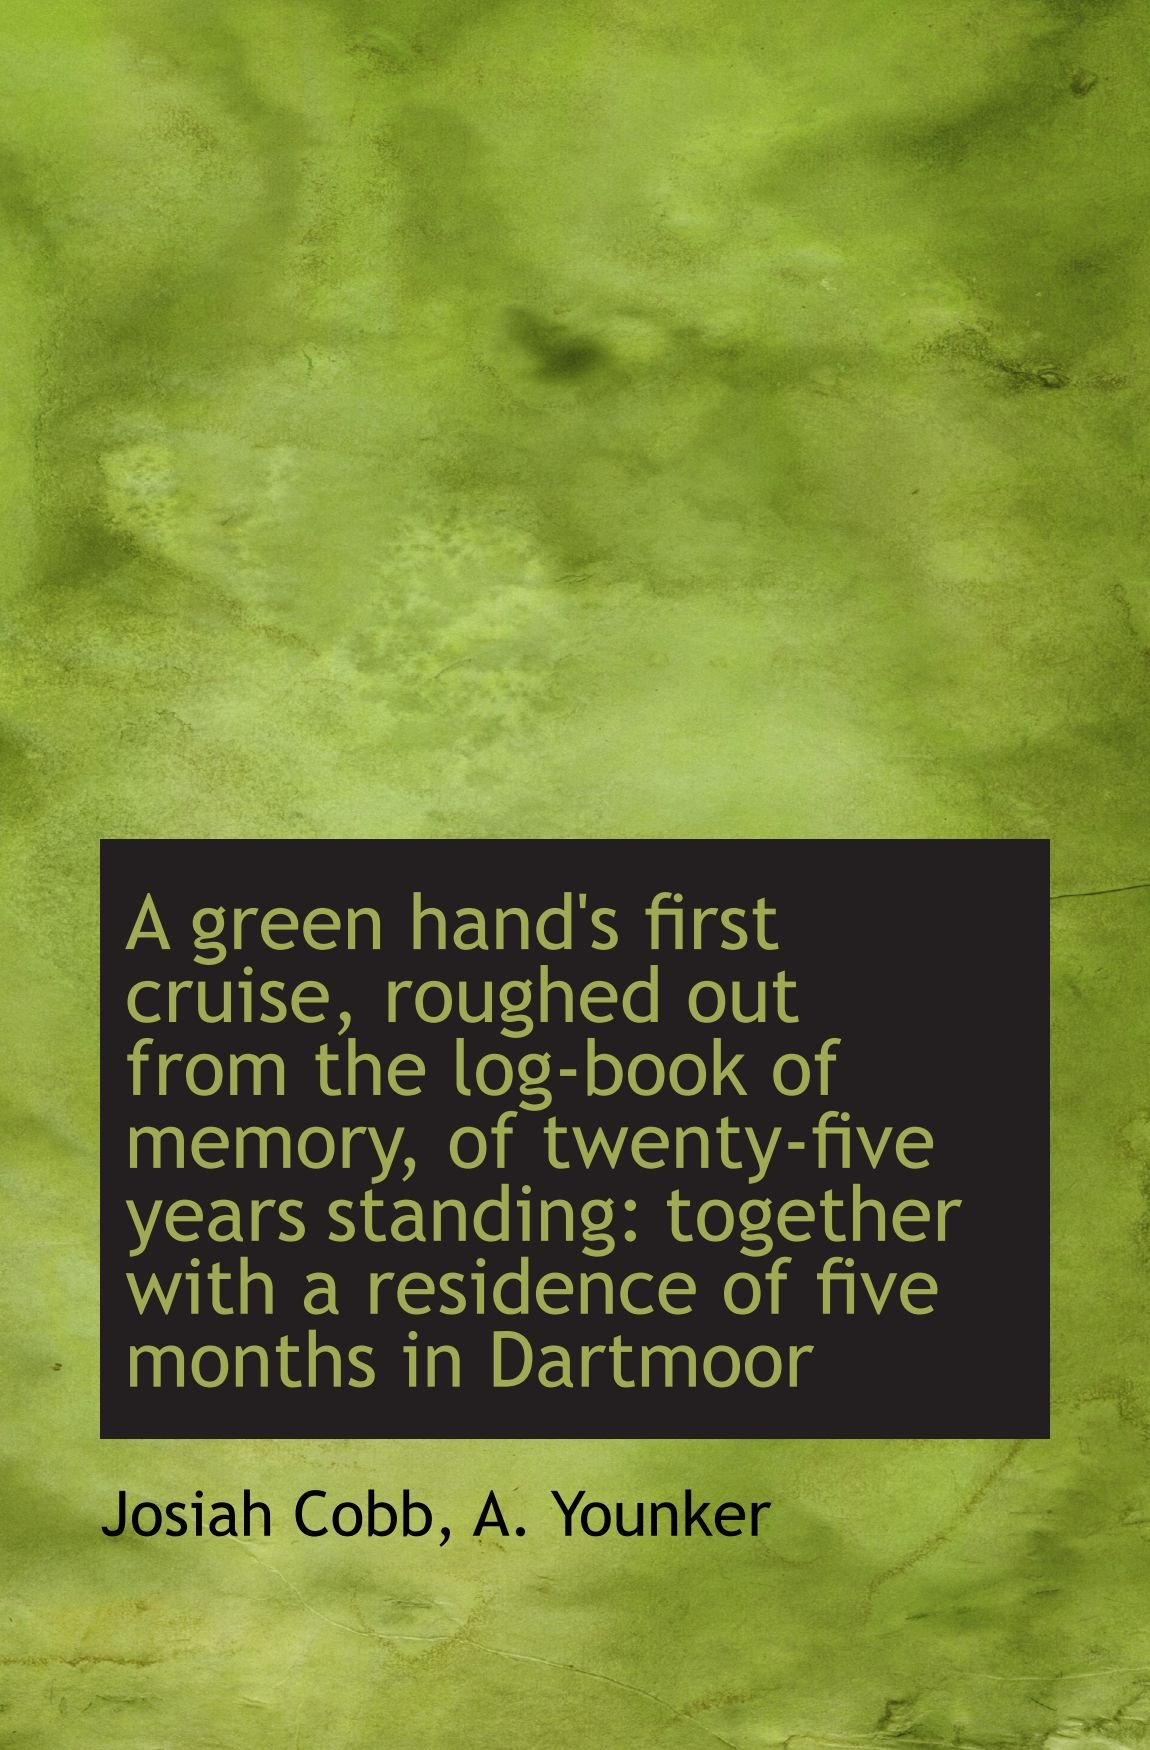 A green hand's first cruise, roughed out from the log-book of memory, of twenty-five years standing: ebook